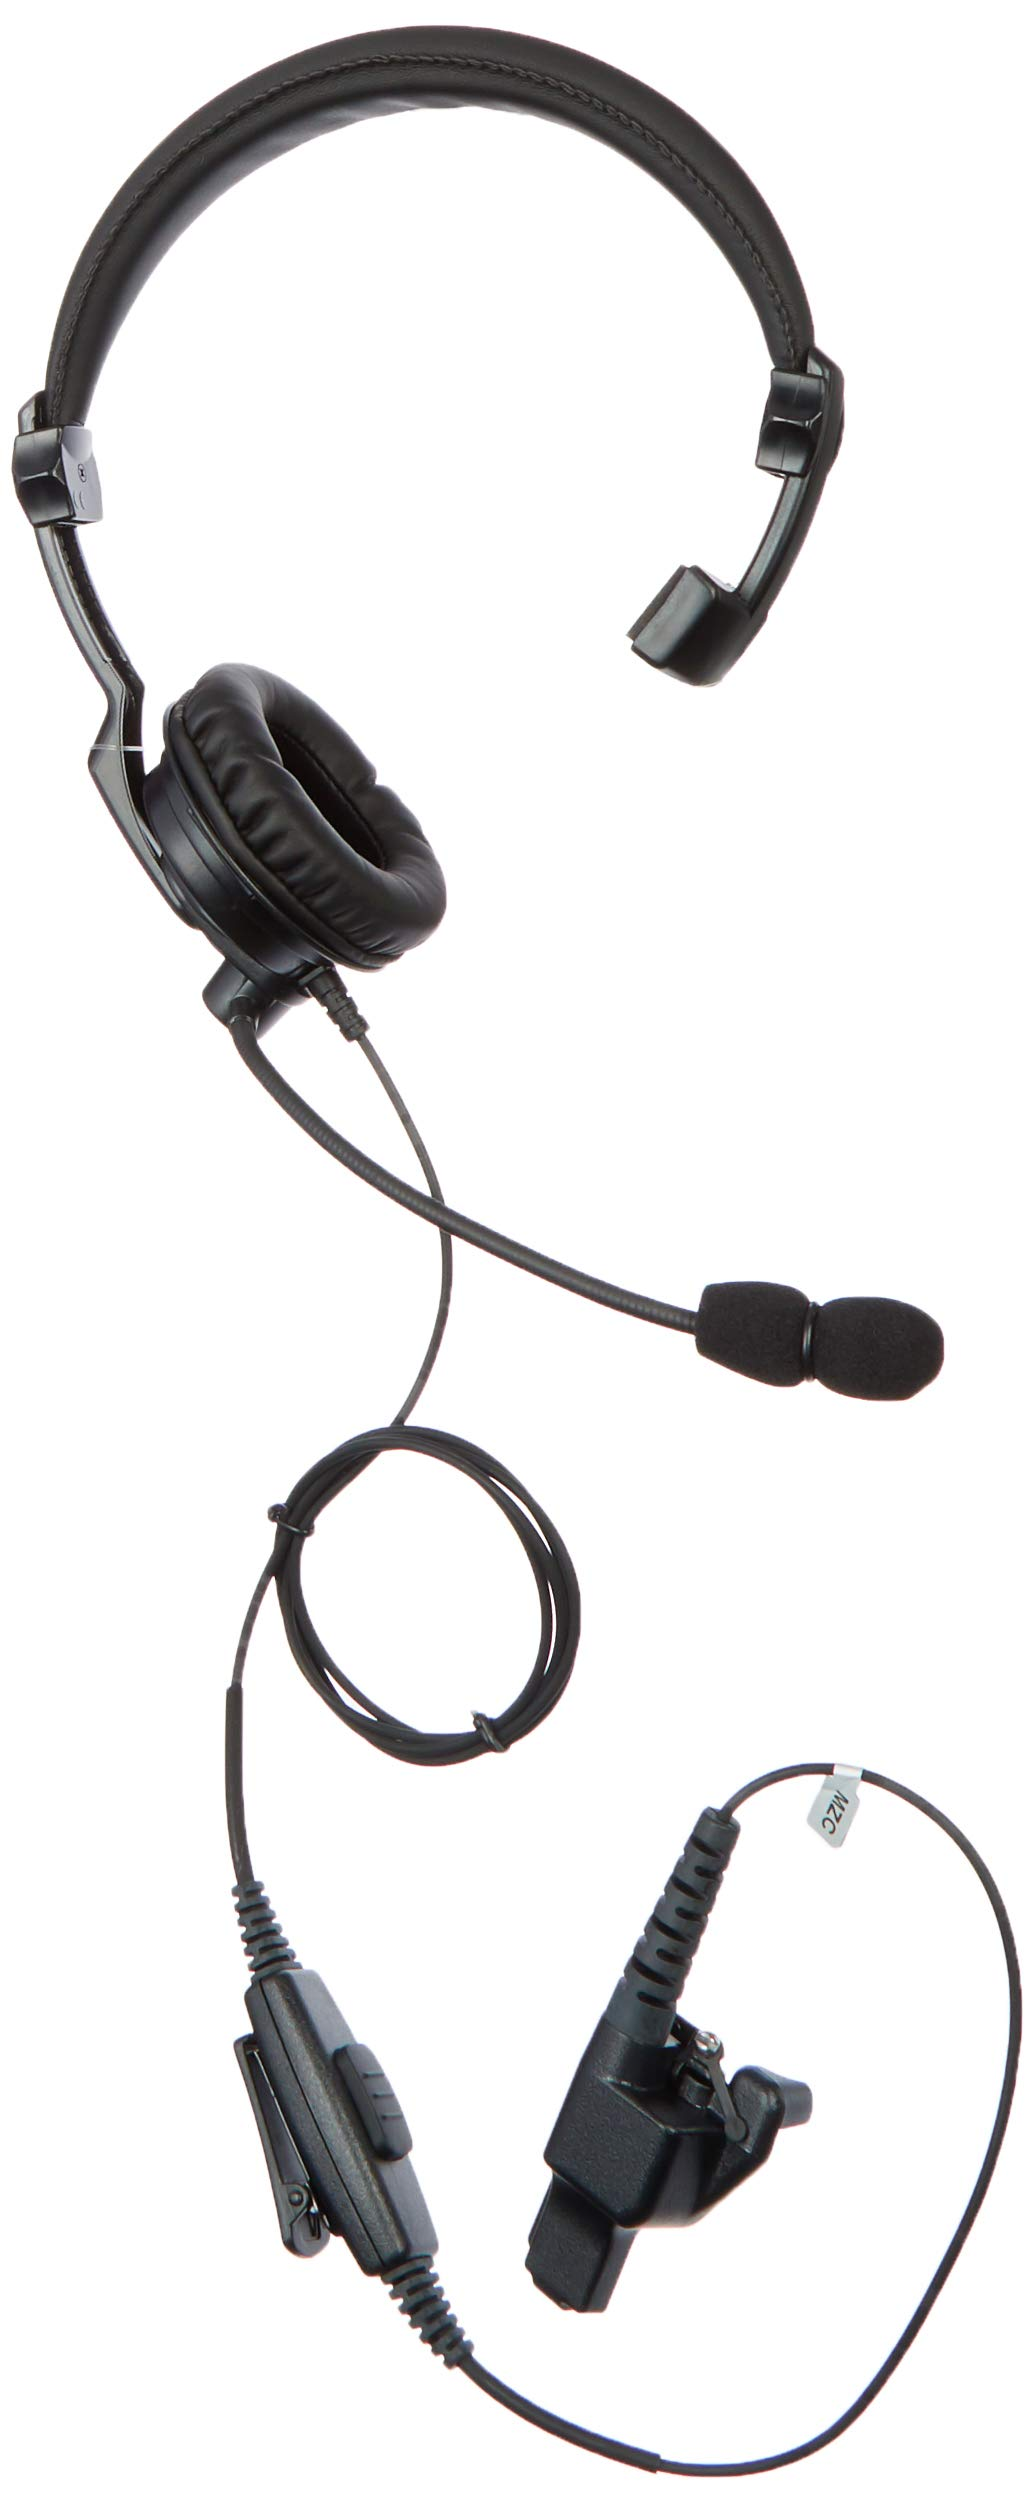 PRYME HLP-SNL-23 Hlp-SNL Series - Lightweight Padded Headset: Rugged Over-The-Head Headset for Portable Radios with Noise-Cancelling Boom Mic & Padded Speaker, Black